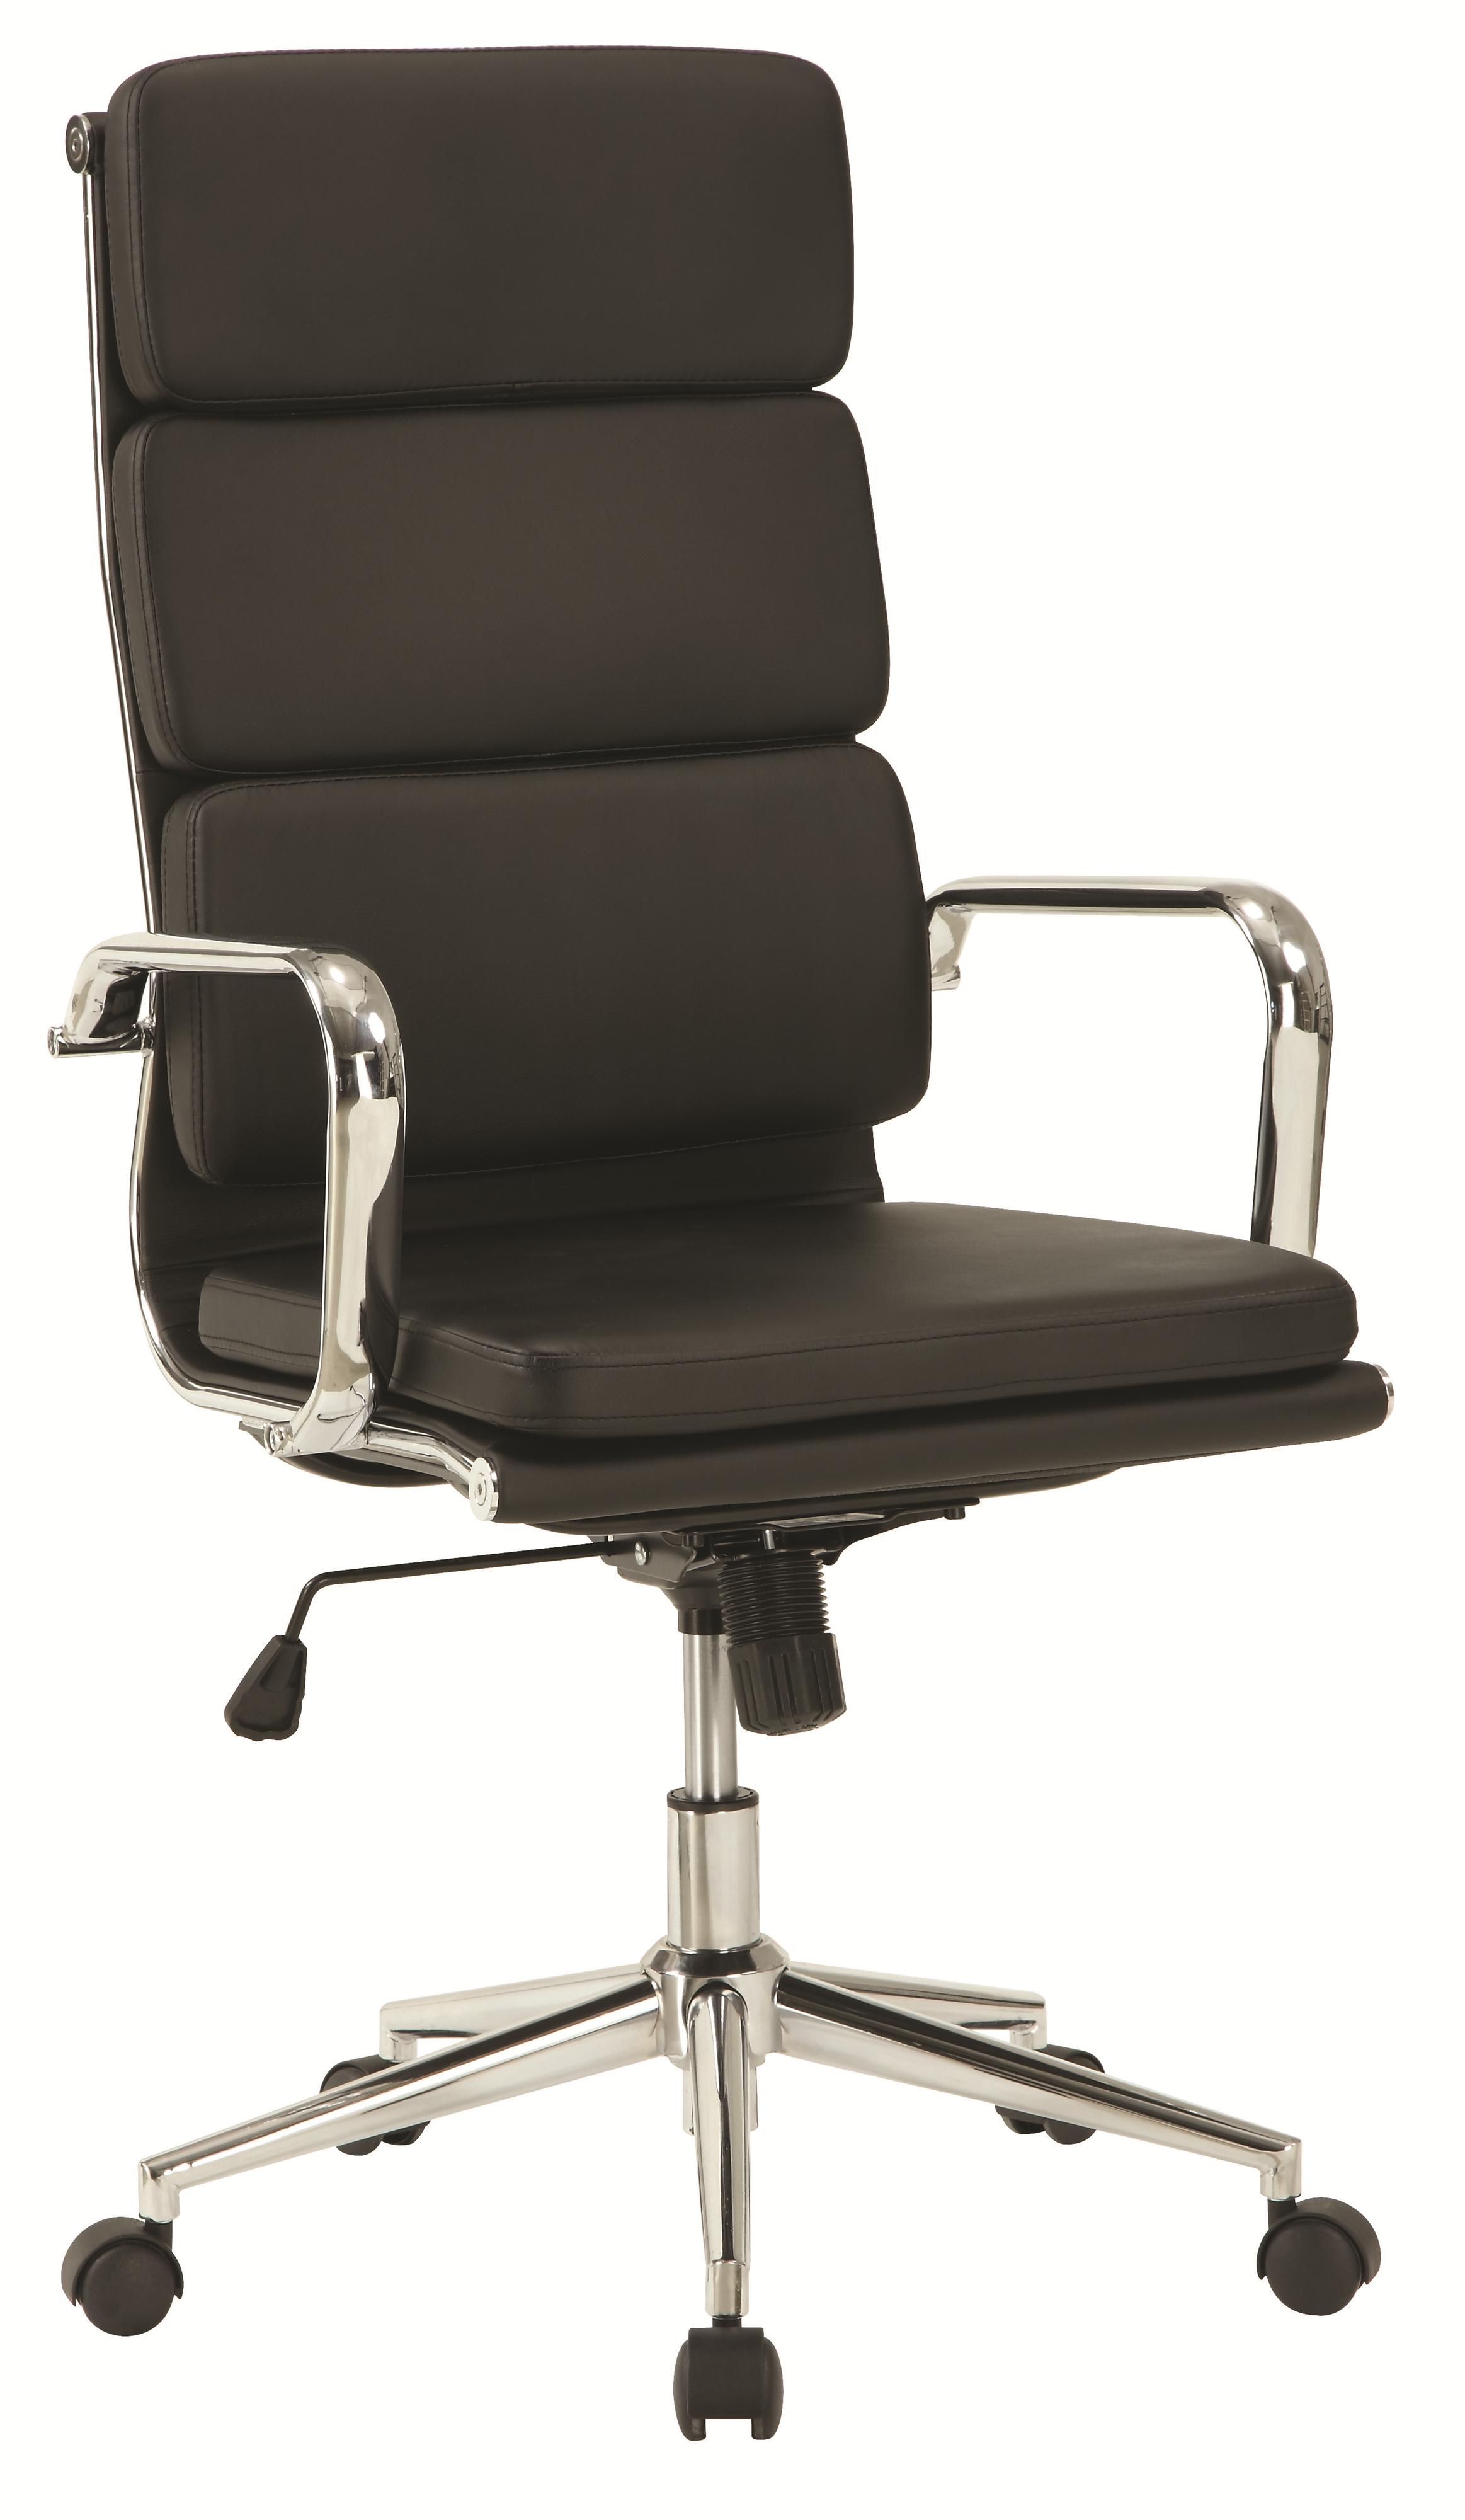 Office Chairs Modern Office Chair W High Back Quality Furniture At Affordable Prices In